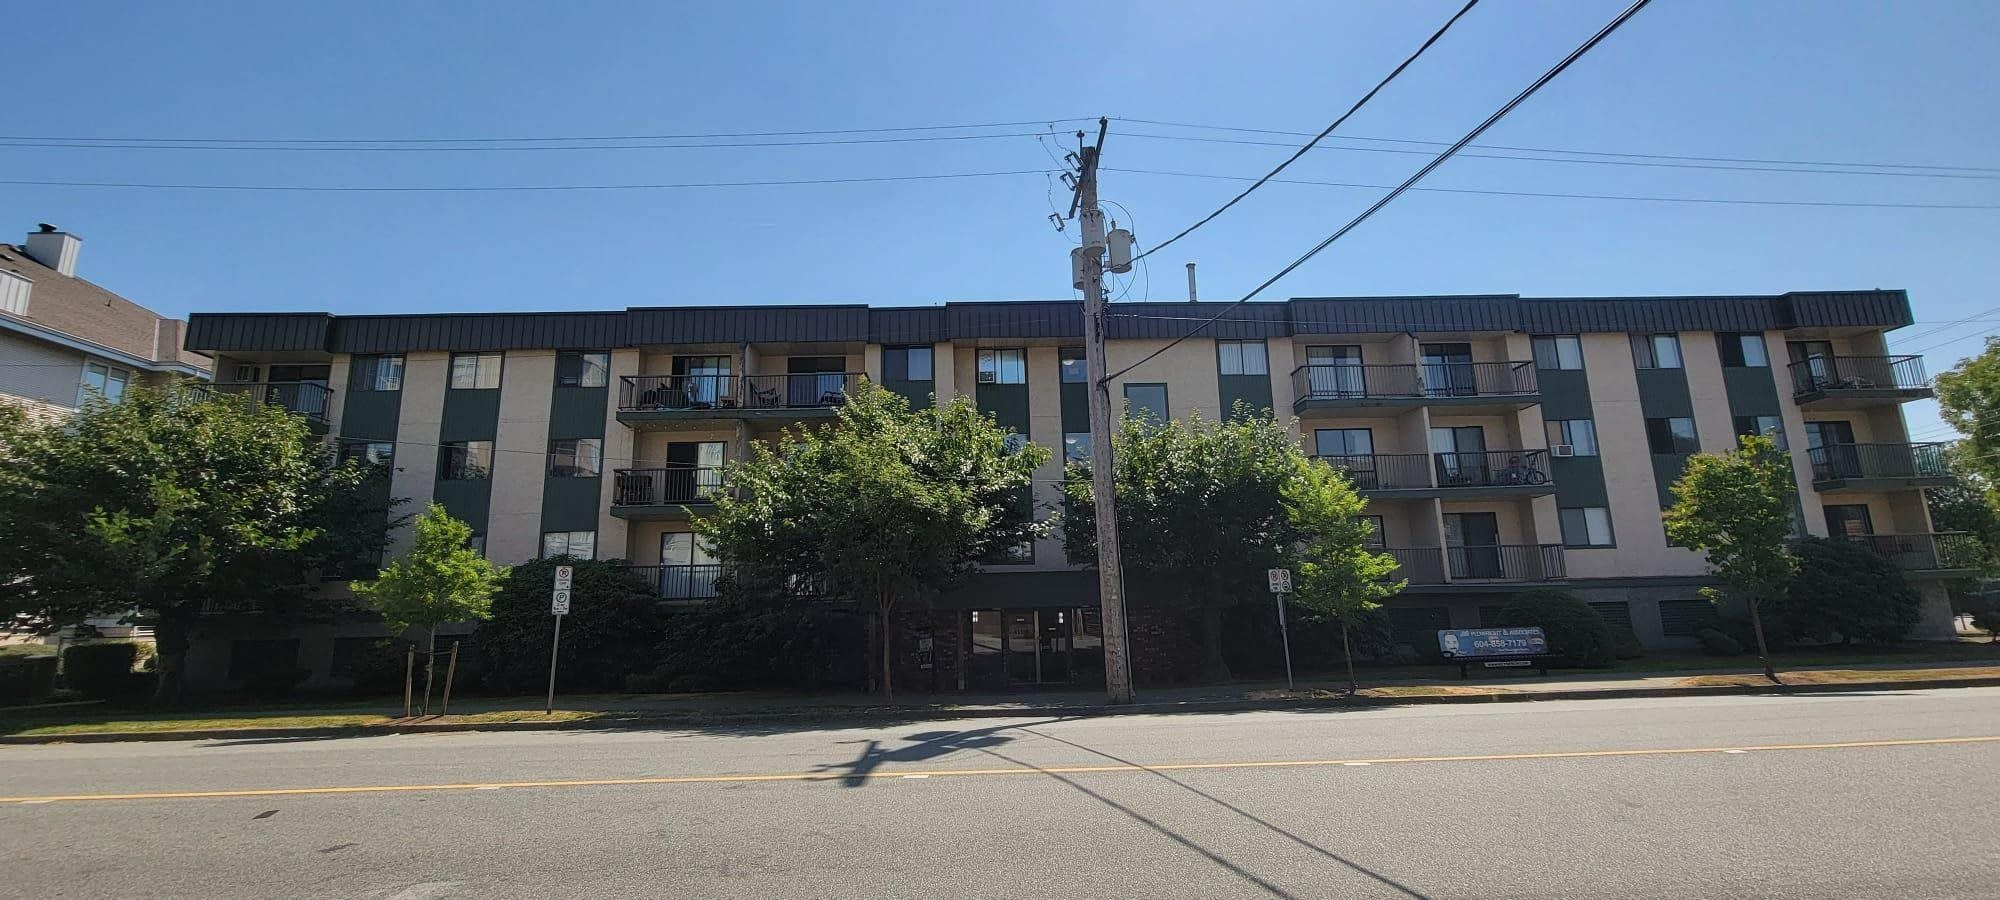 Main Photo: 208 45744 SPADINA Avenue in Chilliwack: Chilliwack W Young-Well Condo for sale : MLS®# R2602093